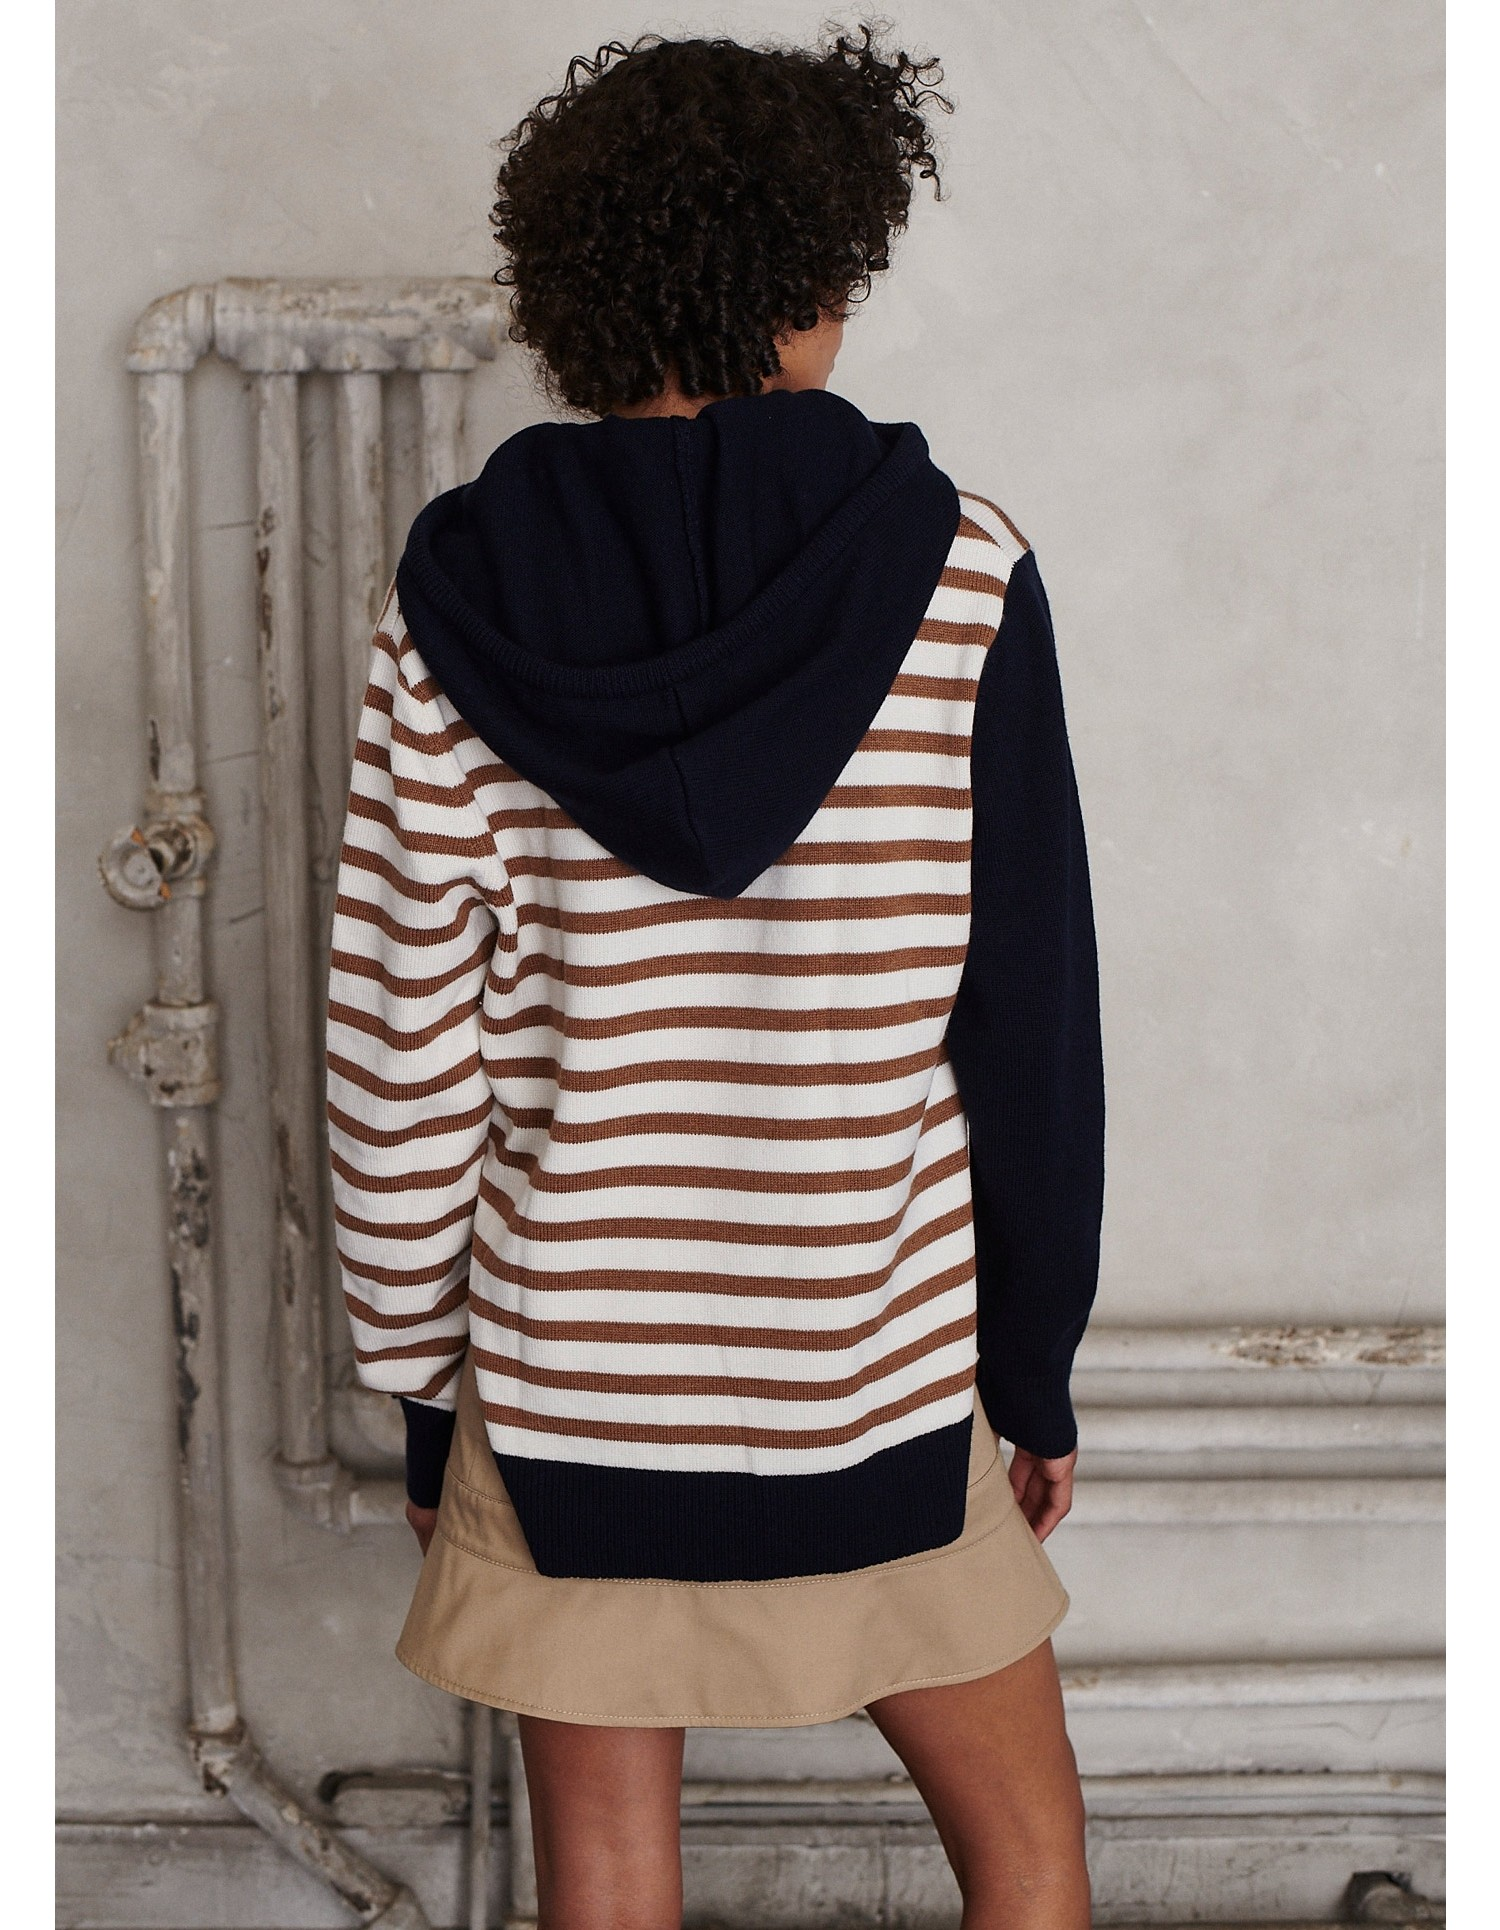 MONSE Rugby Striped Knit Hoodie on Model Back View